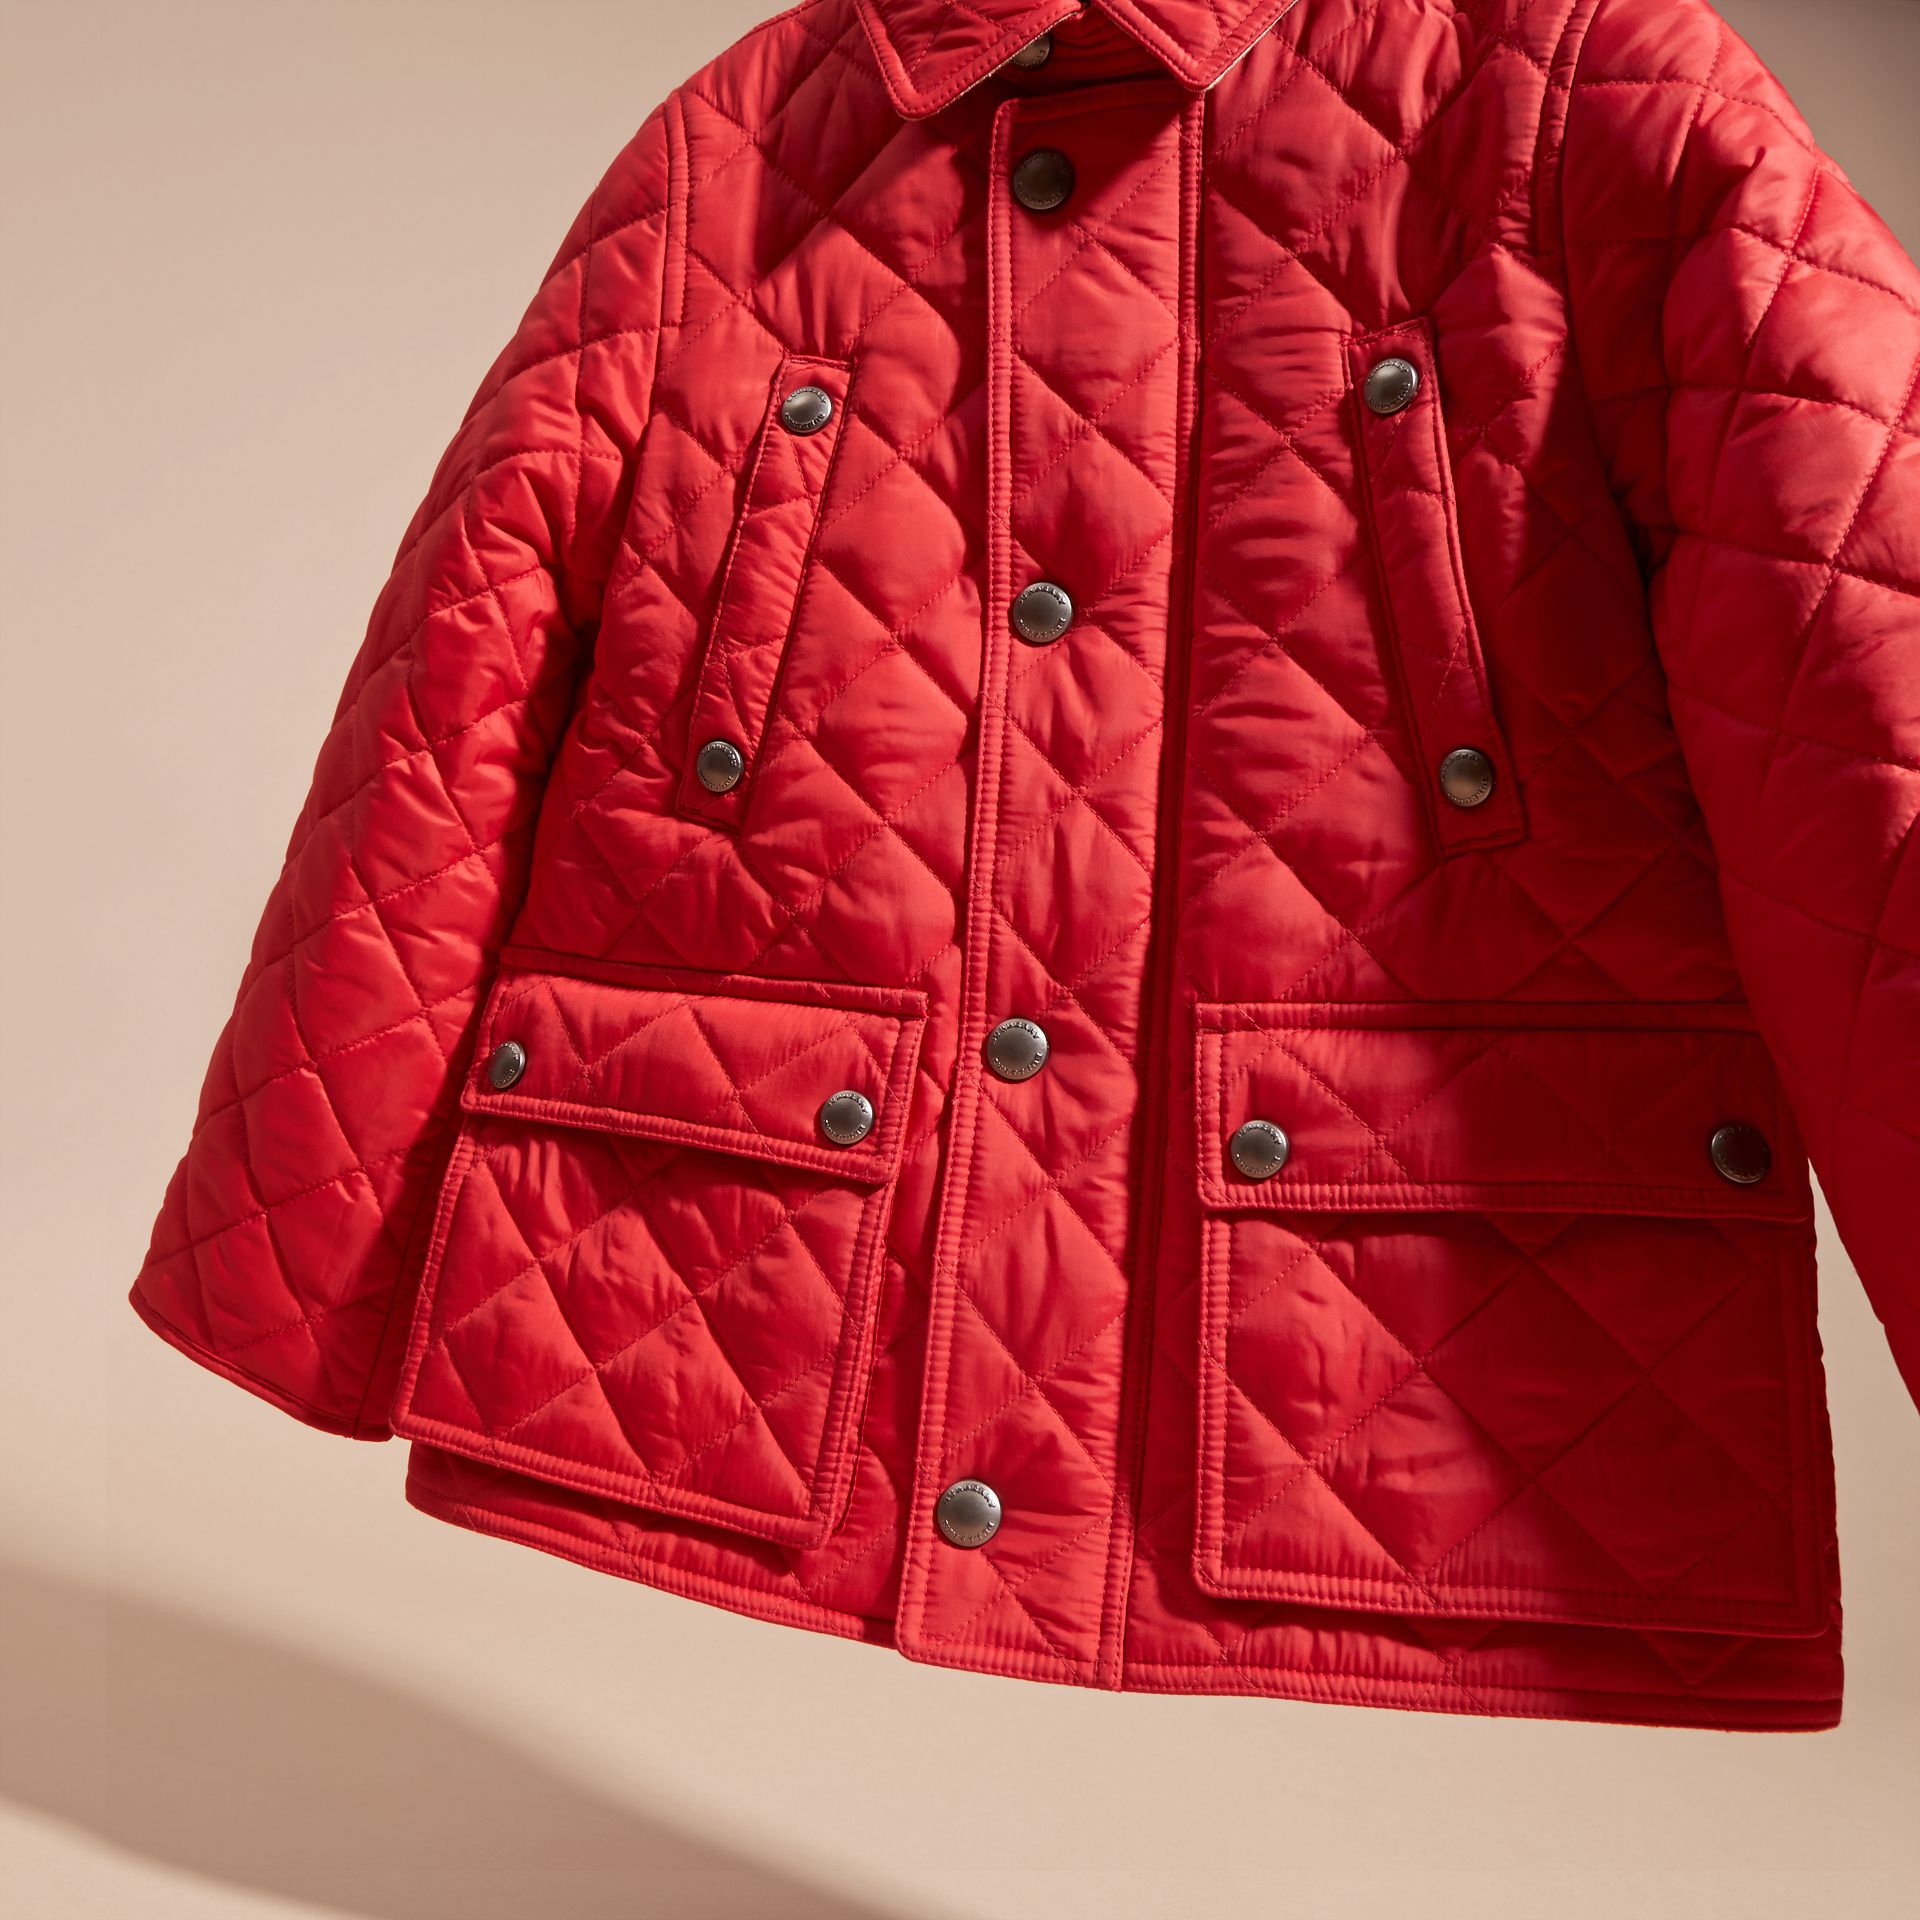 Lightweight Quilted Jacket with Detachable Hood Bright Cherry Red - gallery image 3